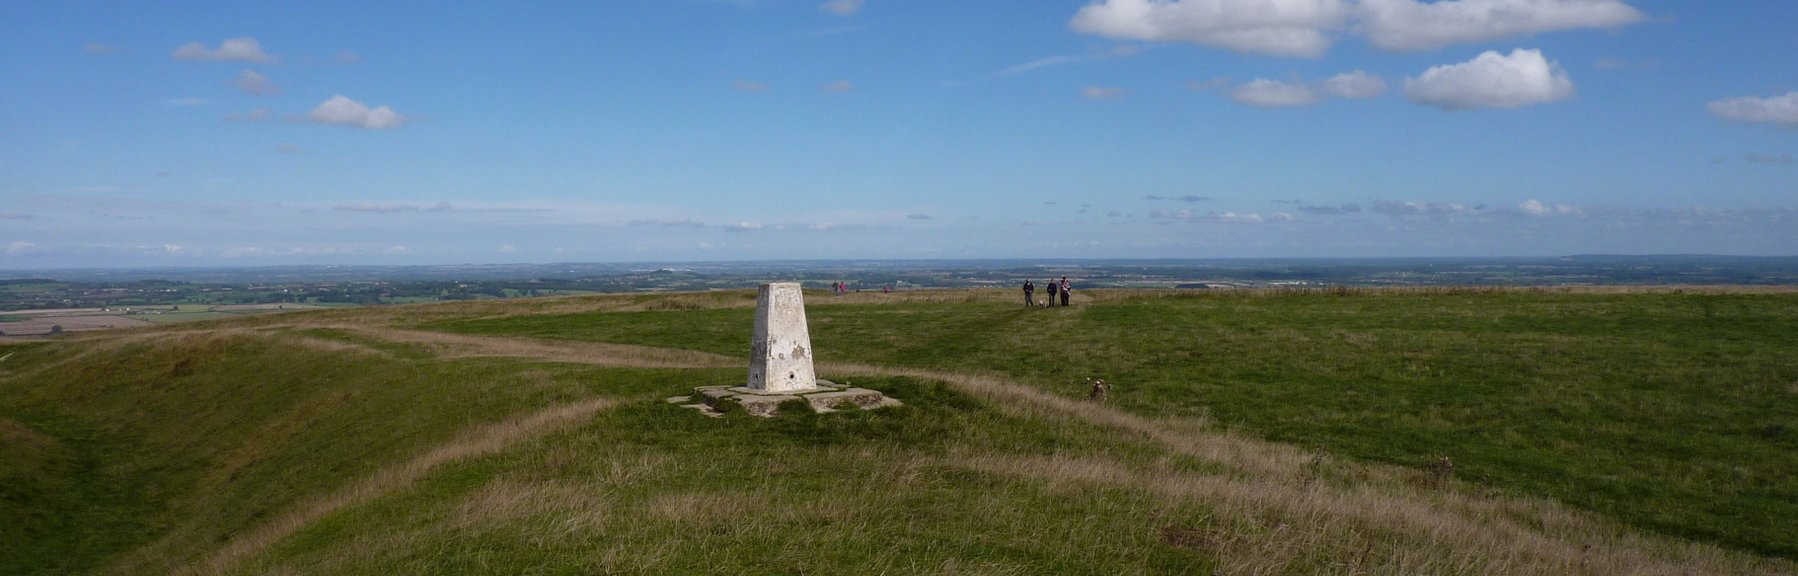 White Horse trig point on the Ridgeway